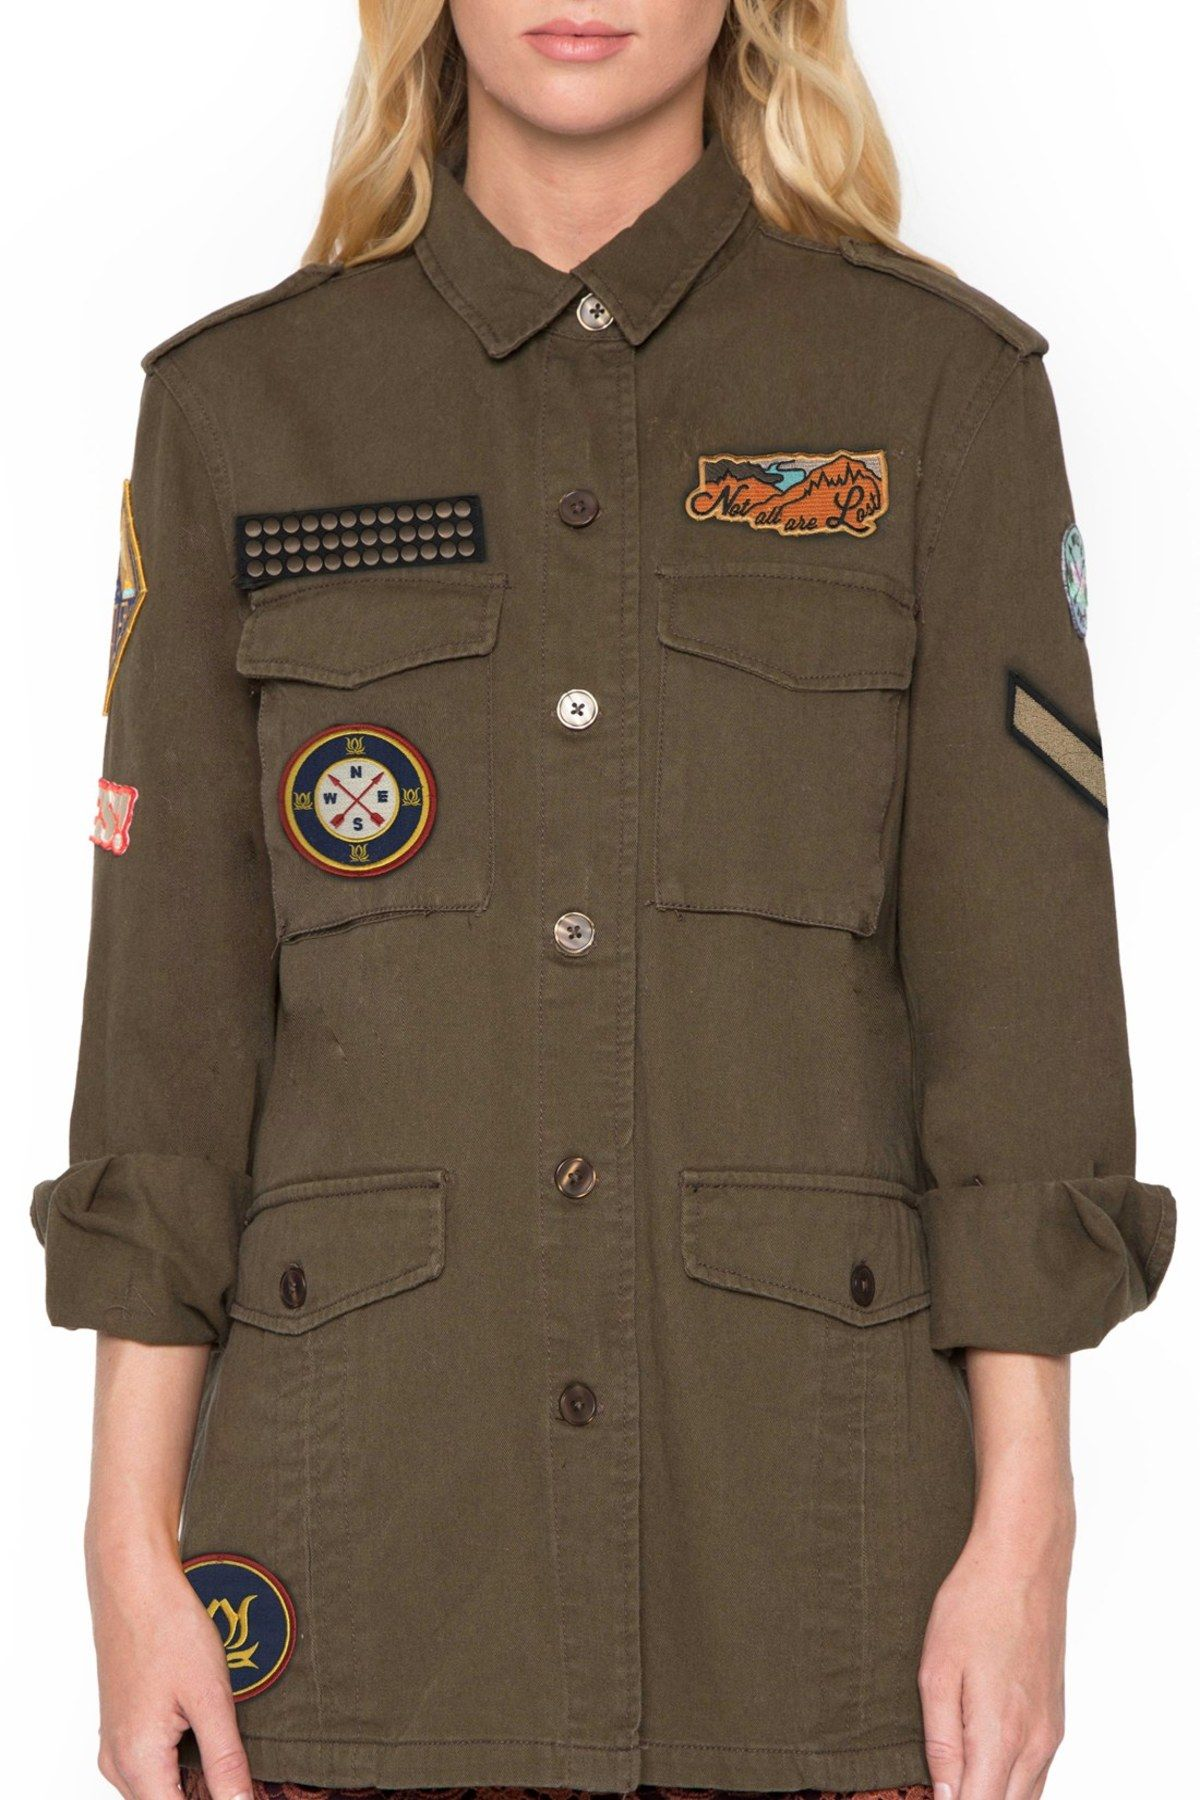 Army Patch Jacket | Patches jacket, Willow & clay, Jackets